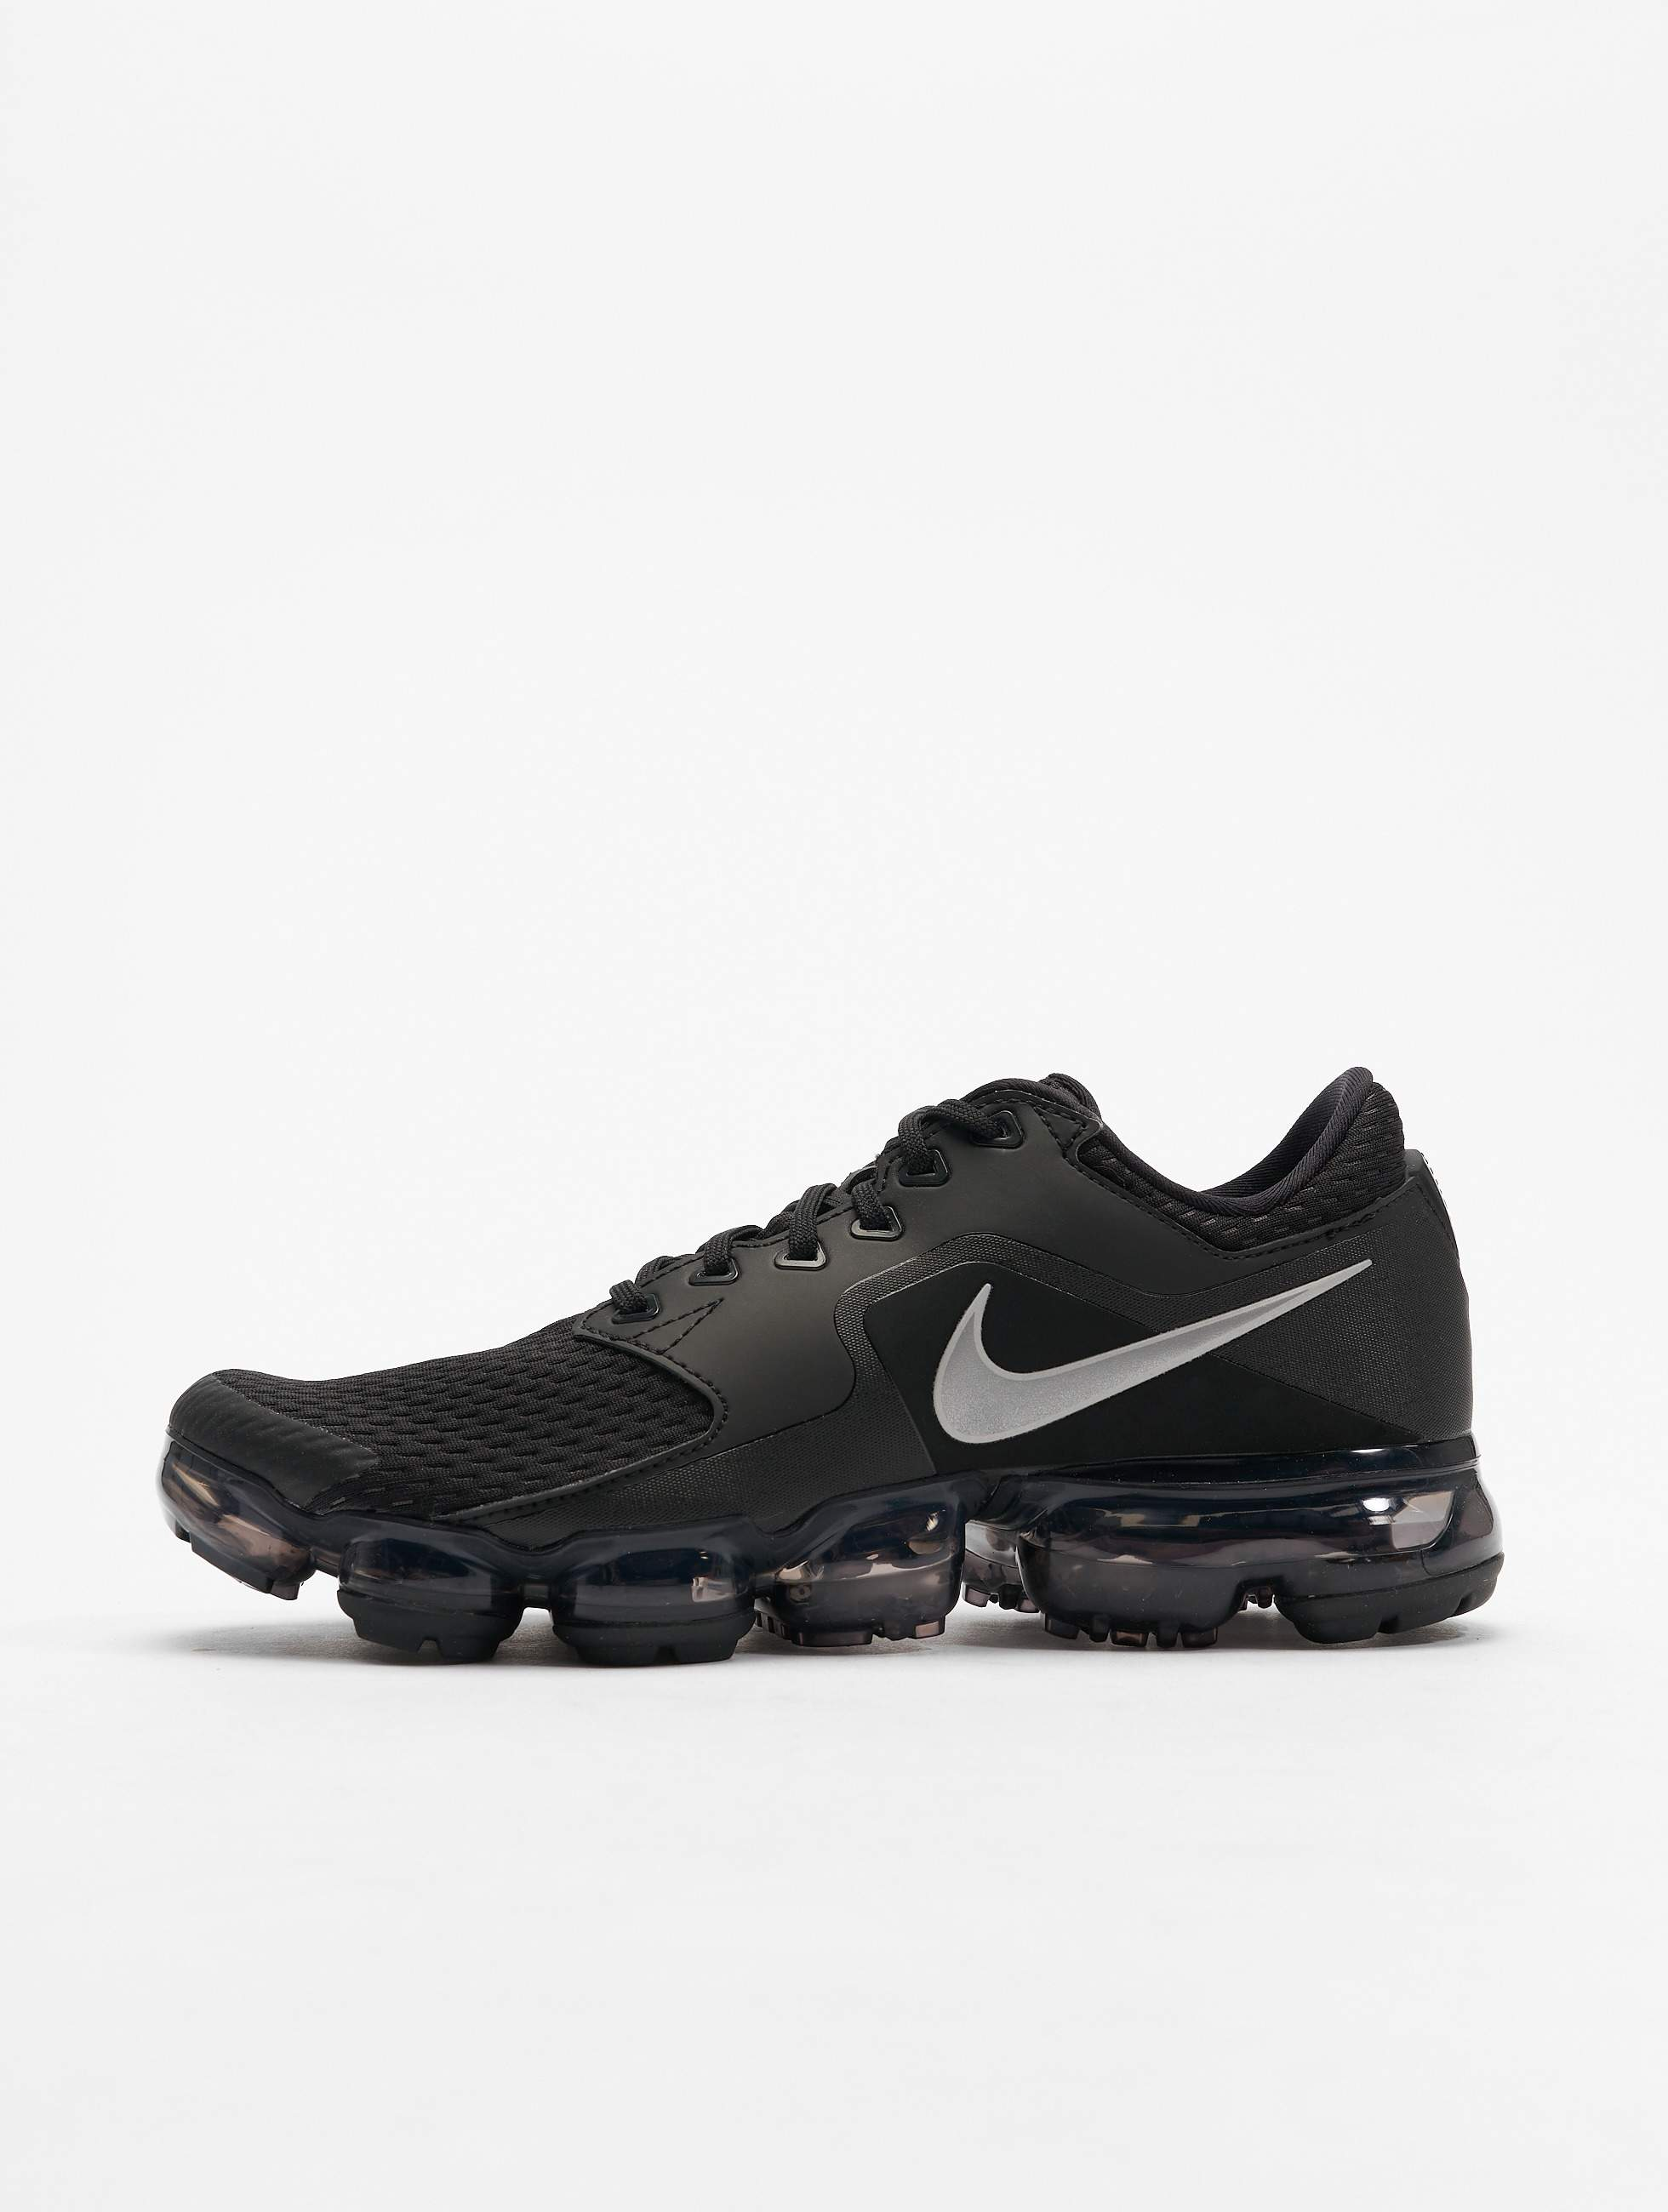 reputable site 29946 11a3f Nike Kengät   Air Vapormax GS Tennarit   musta 540150